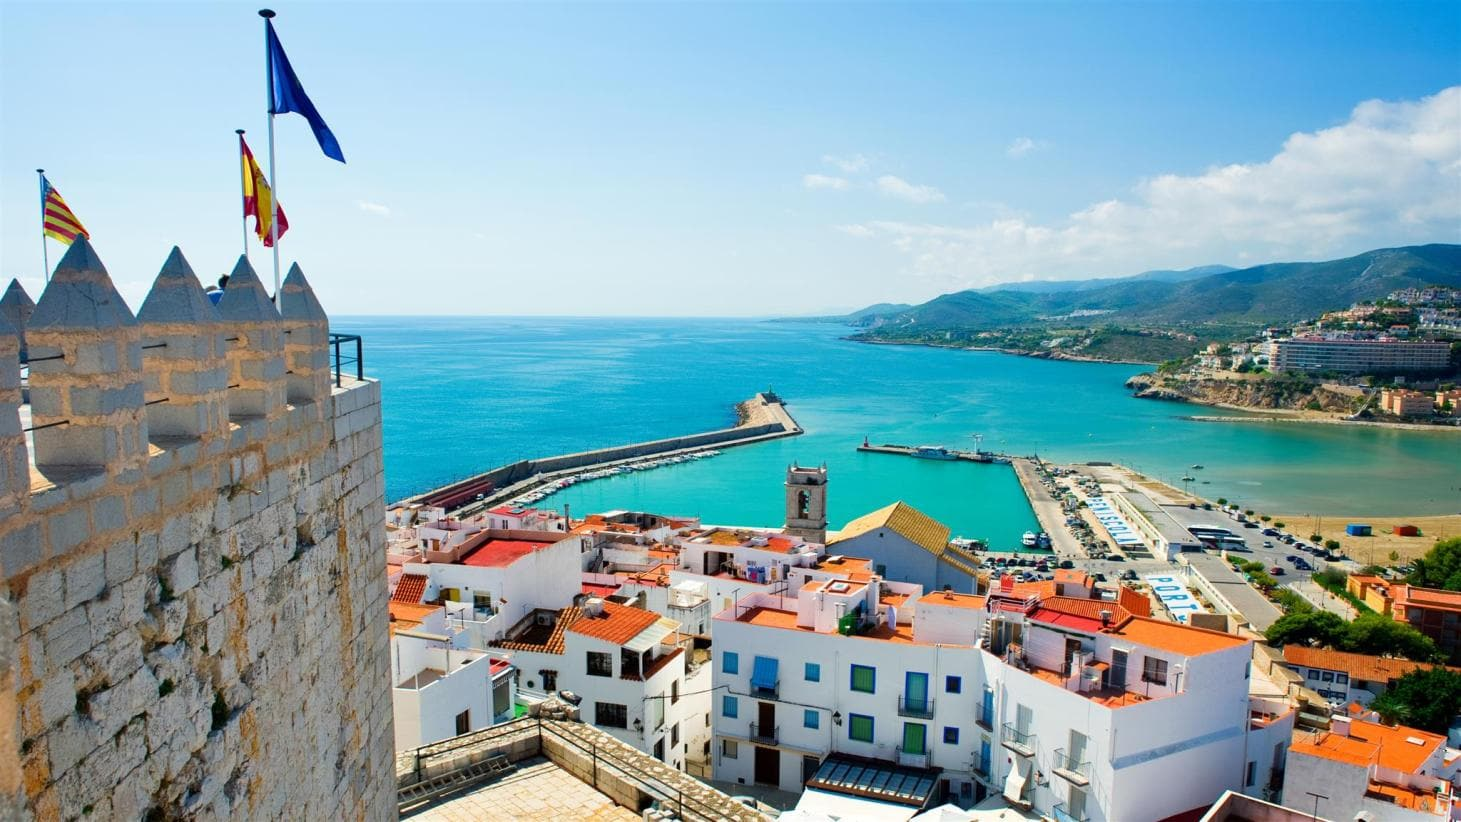 day trip suggestions from Valencia